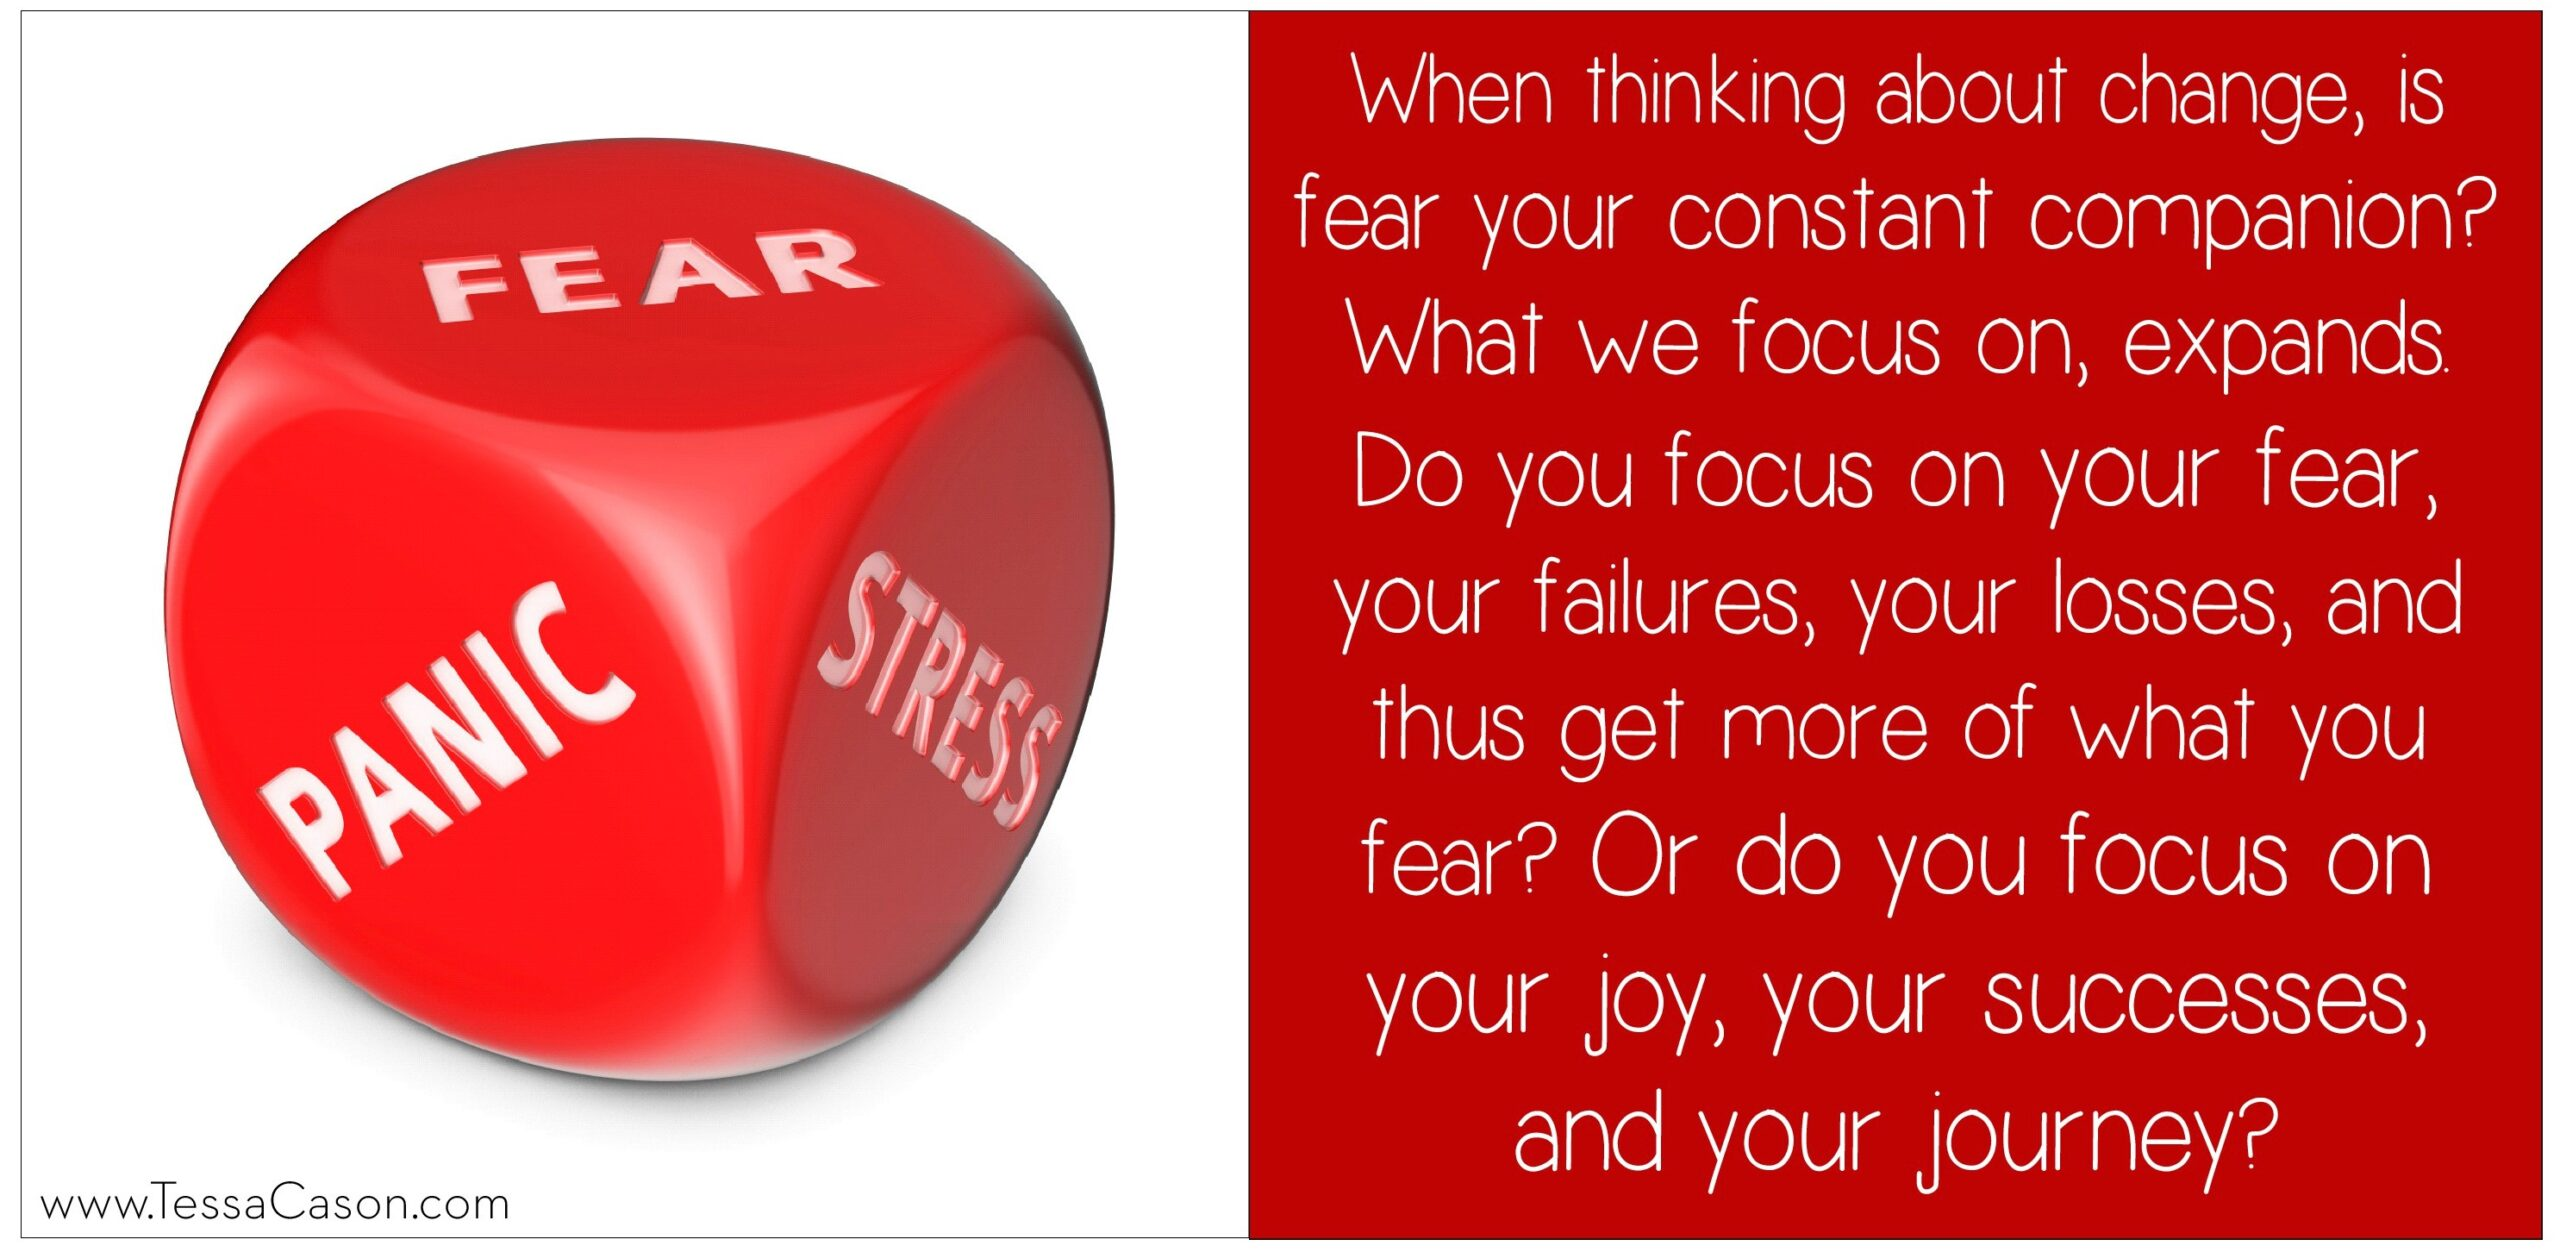 Is fear your constand companion